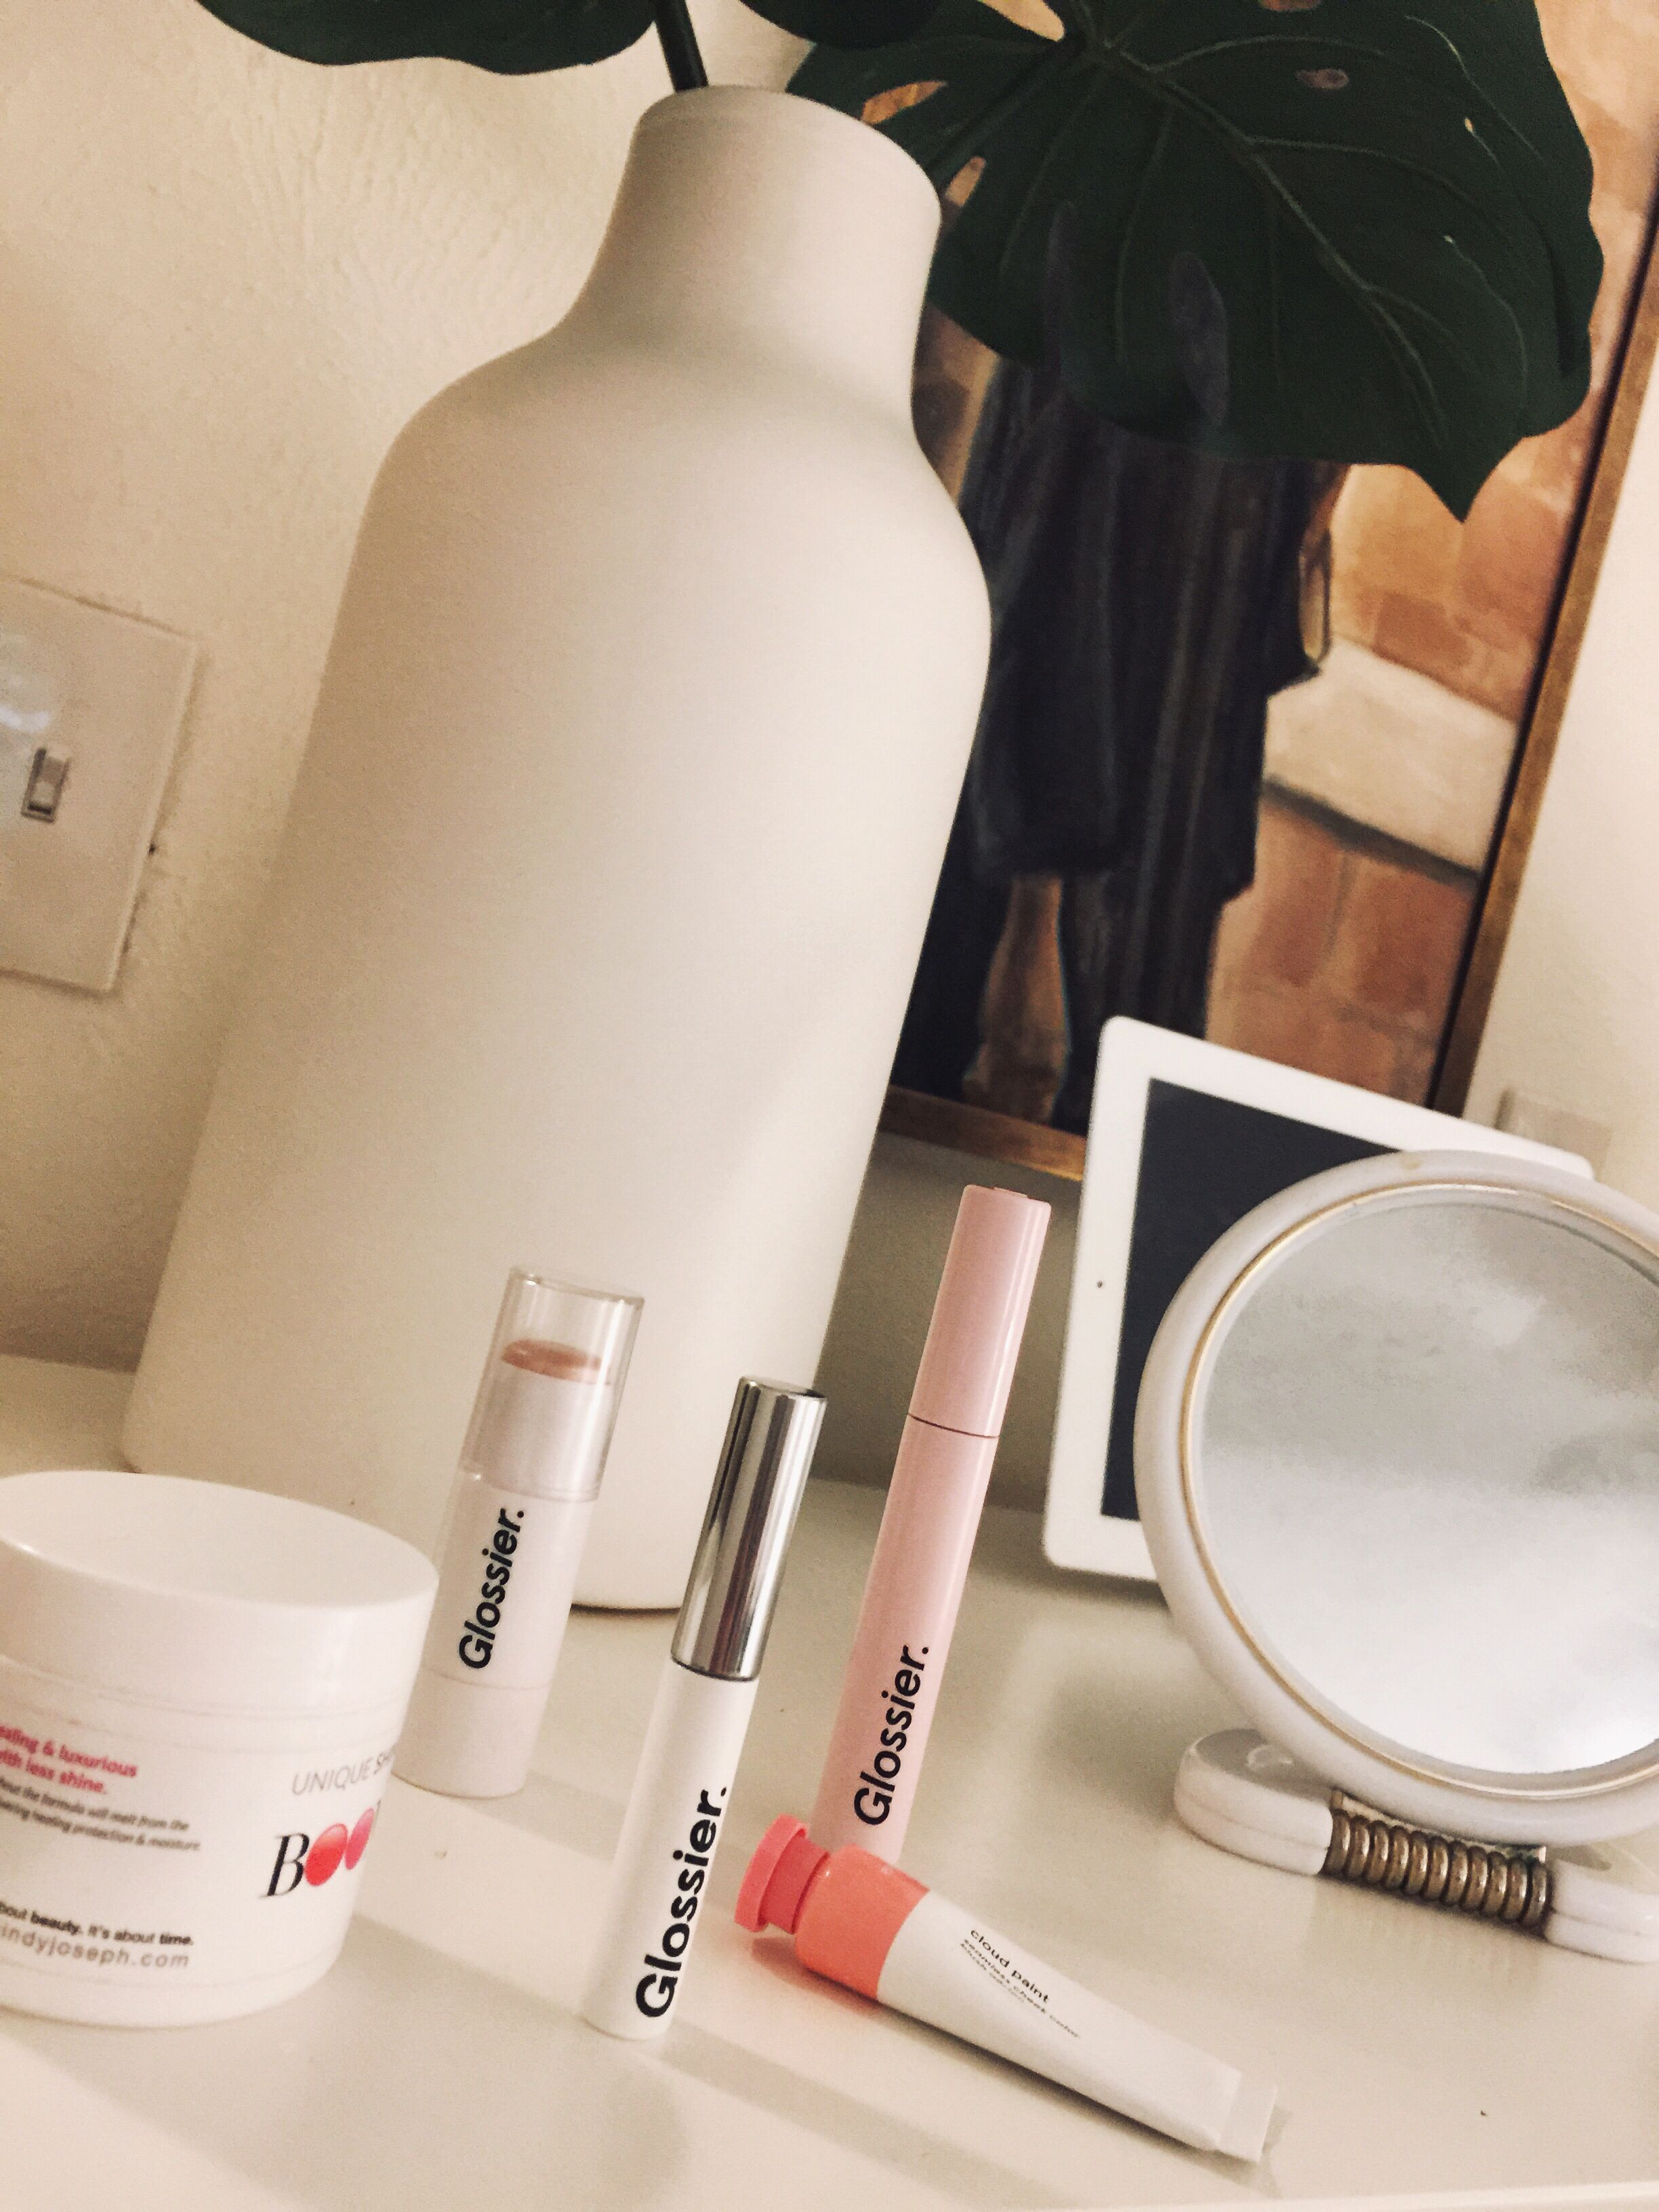 Le Maquillage De Matin Glossier Makeup Cosmetics It's also a way to show what products you use and sometimes a way to give a review of a brand or multiple products. glossier makeup cosmetics